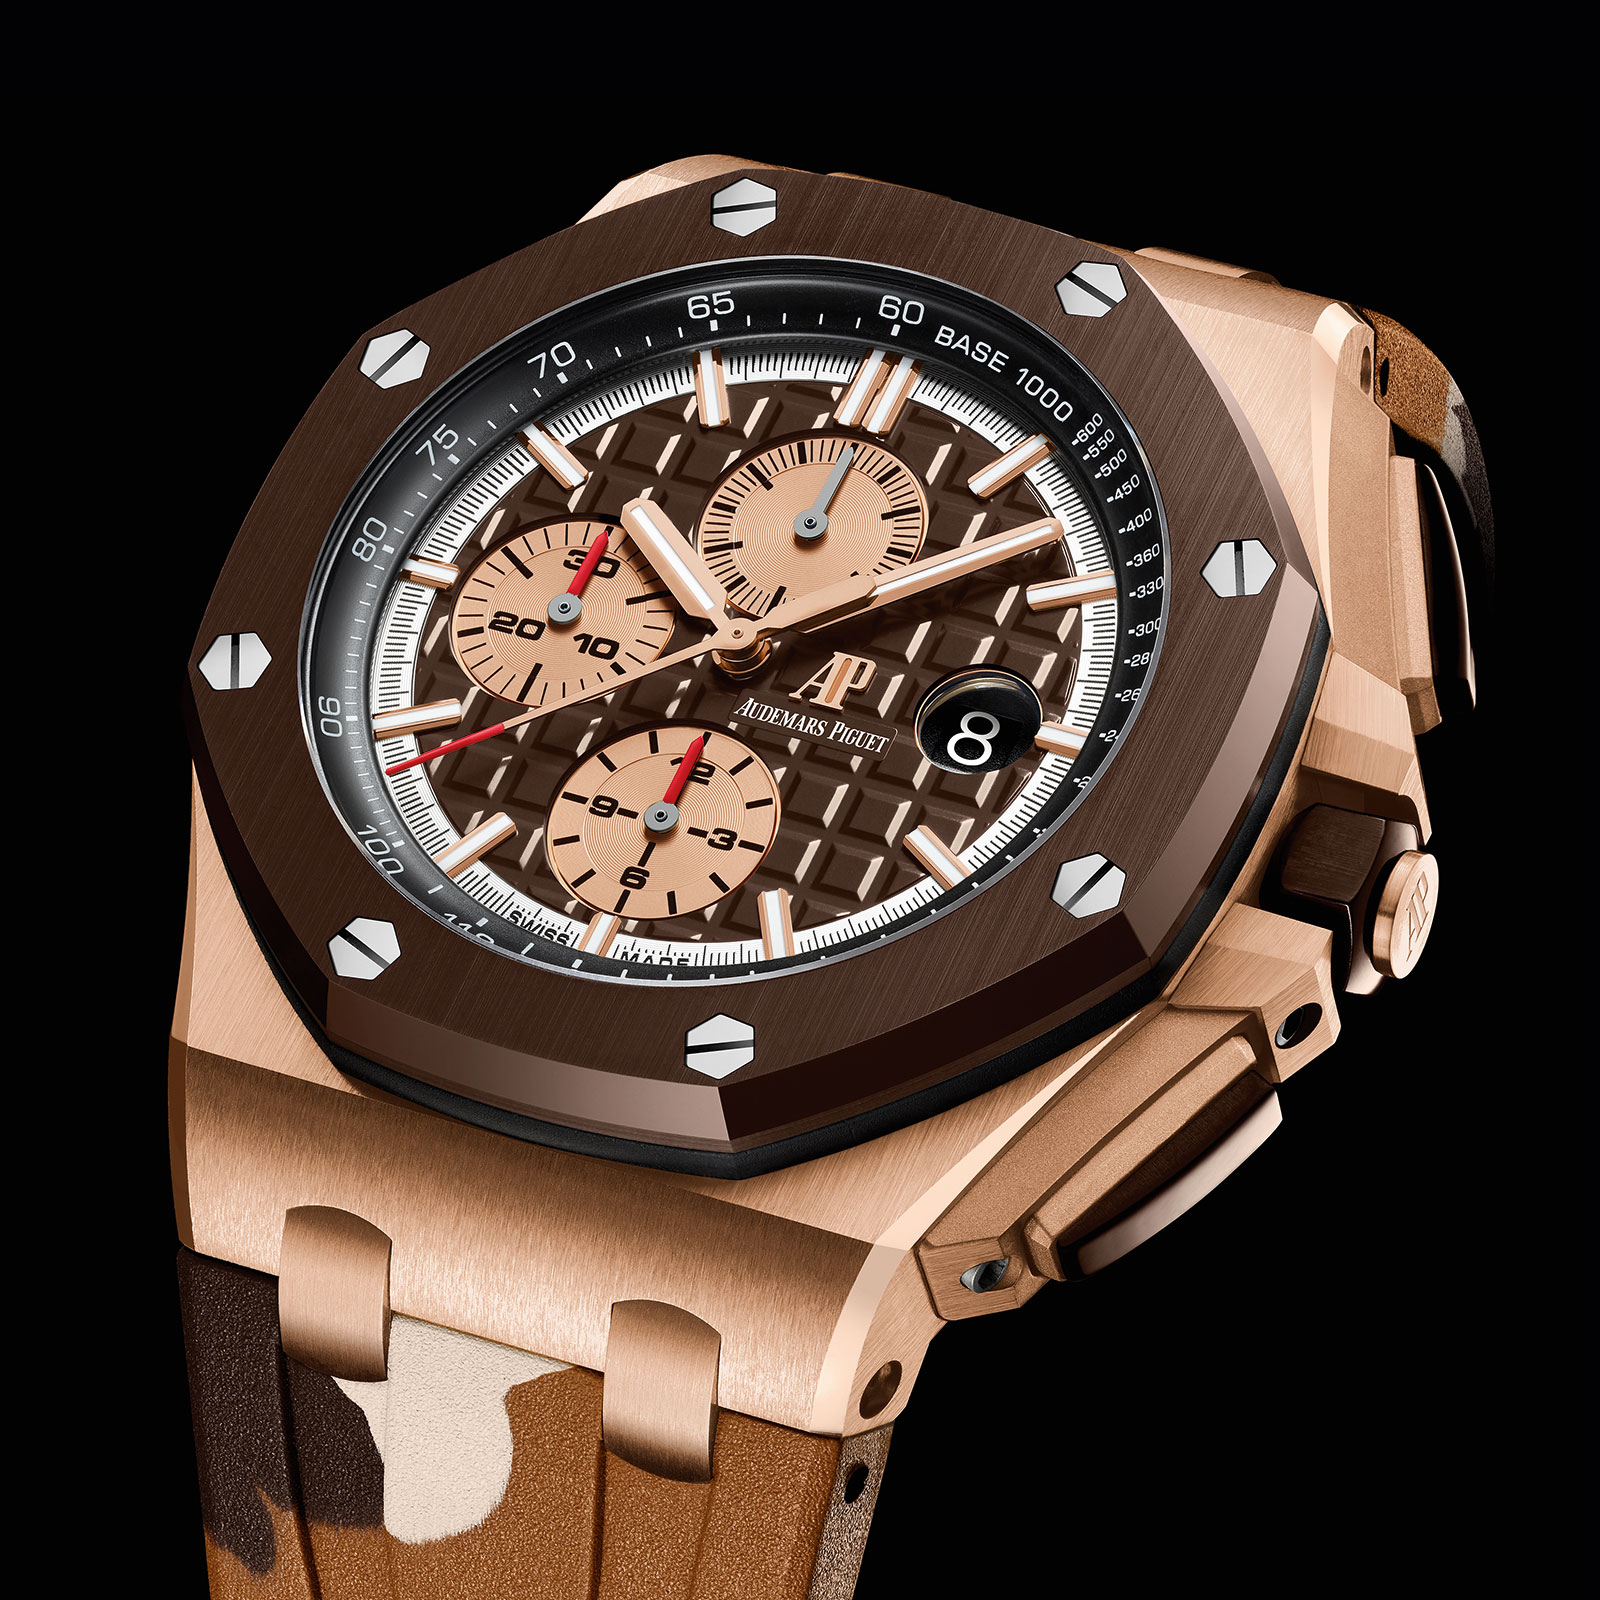 Audemars Piguet Royal Oak Offshore Camo brown